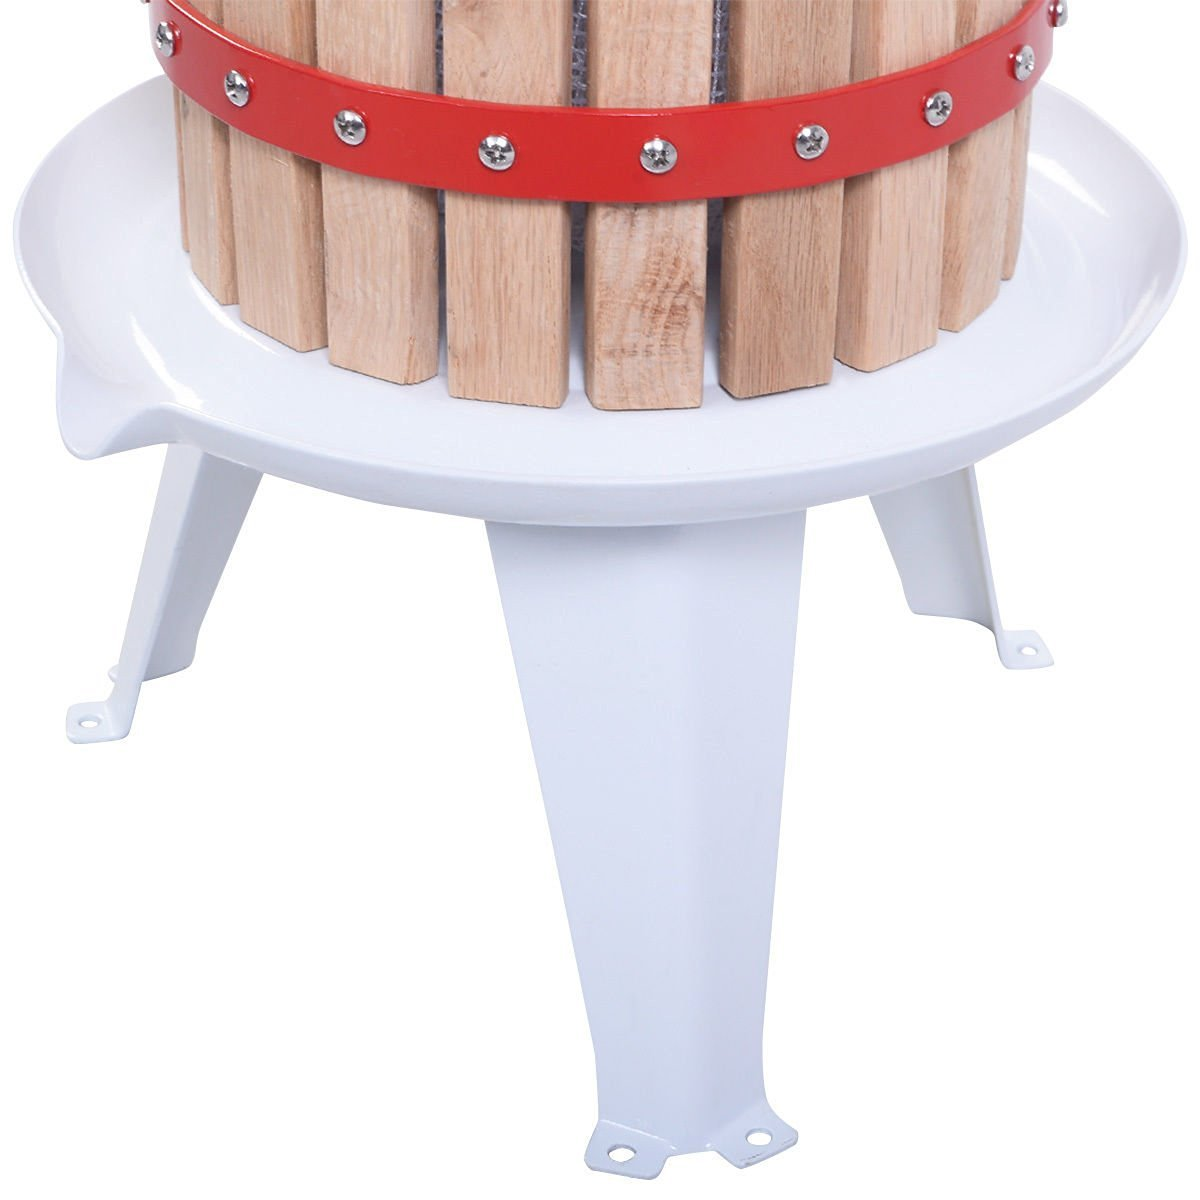 Useful UH-FP165 1.6 Gallon Solid Wood Basket Fruit and wine Press by Useful. (Image #6)